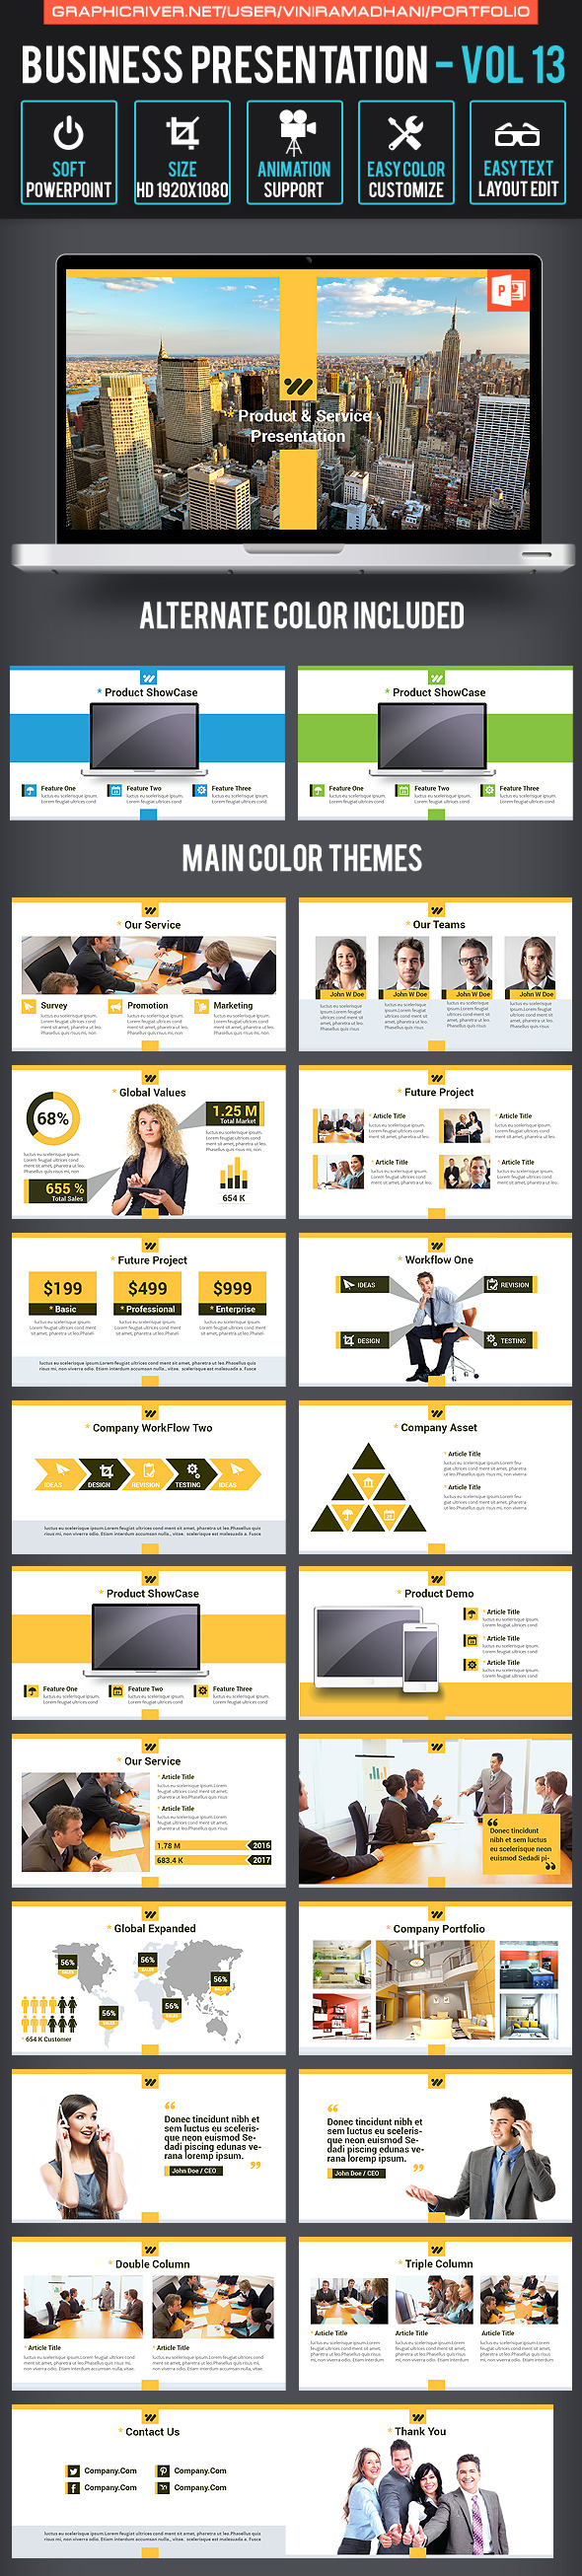 Business Presentation Volume 13 - Business PowerPoint Templates